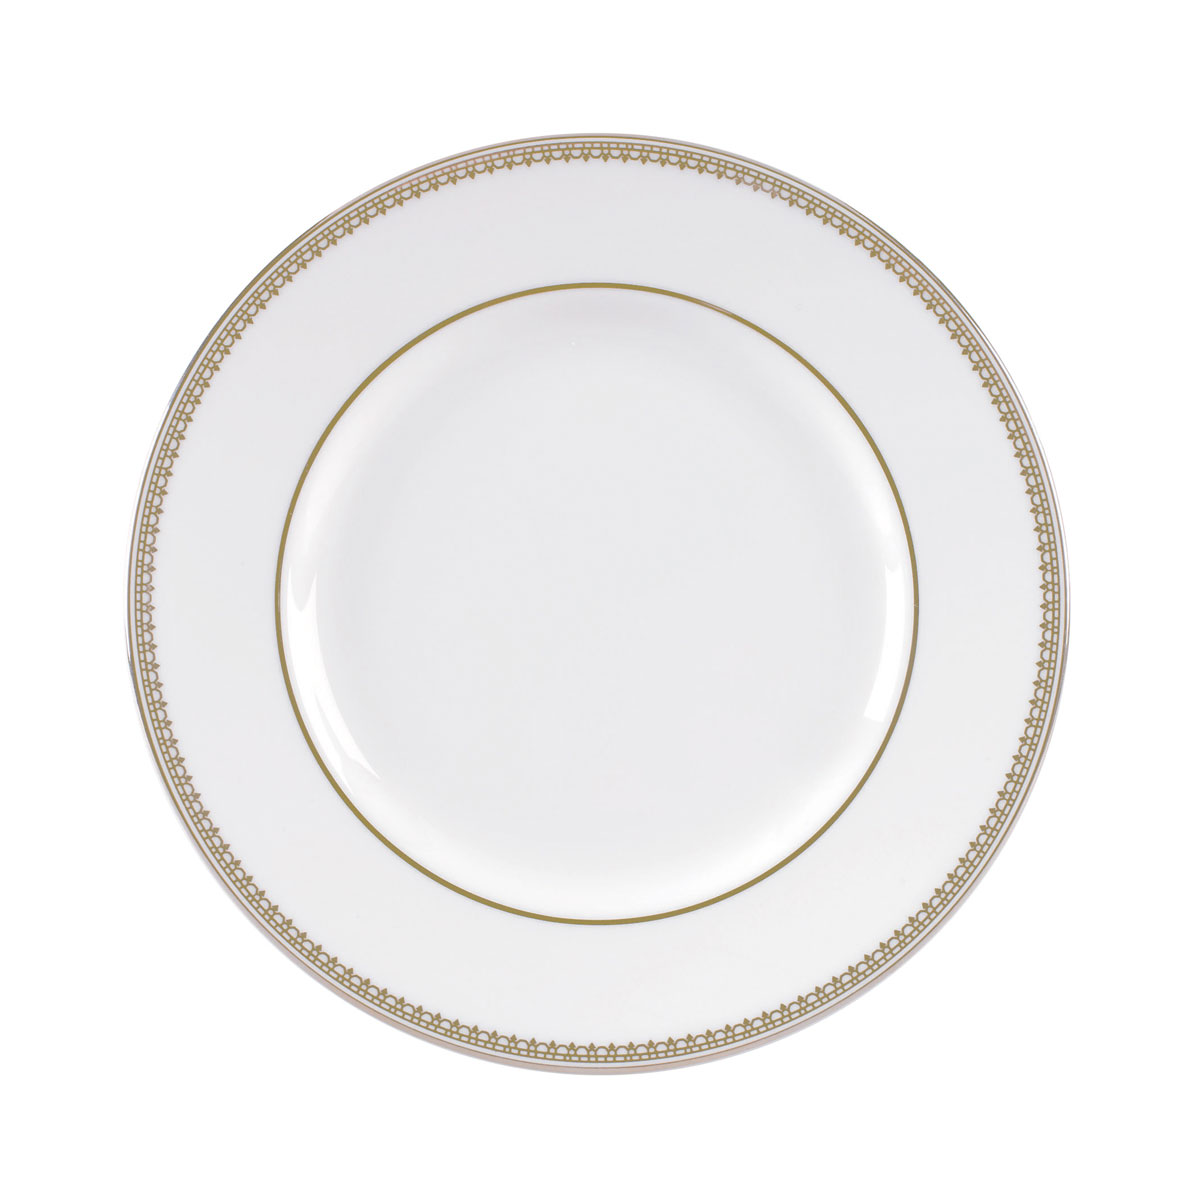 Vera Wang Wedgwood Vera Lace Gold Bread and Butter Plate, Single